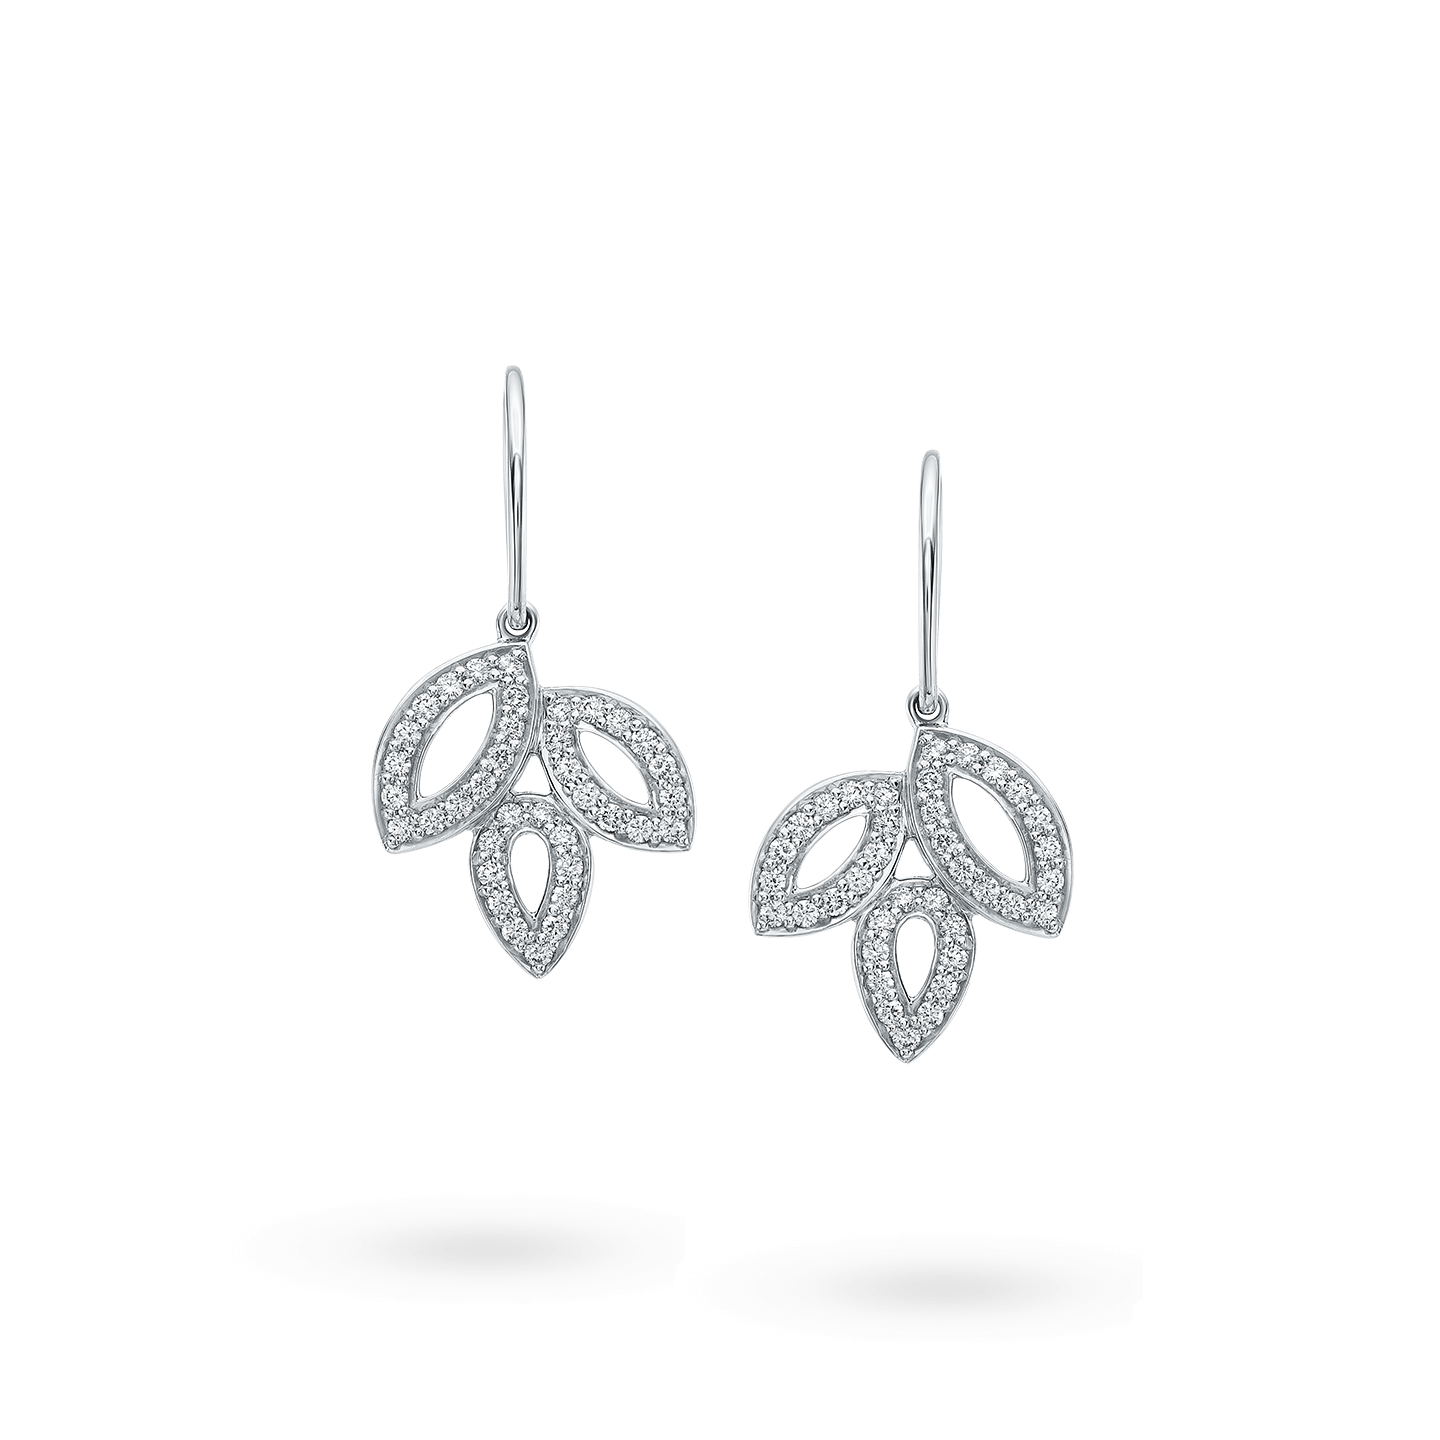 Lily Cluster Small Diamond Earrings on Platinum Wire, Product Image 1